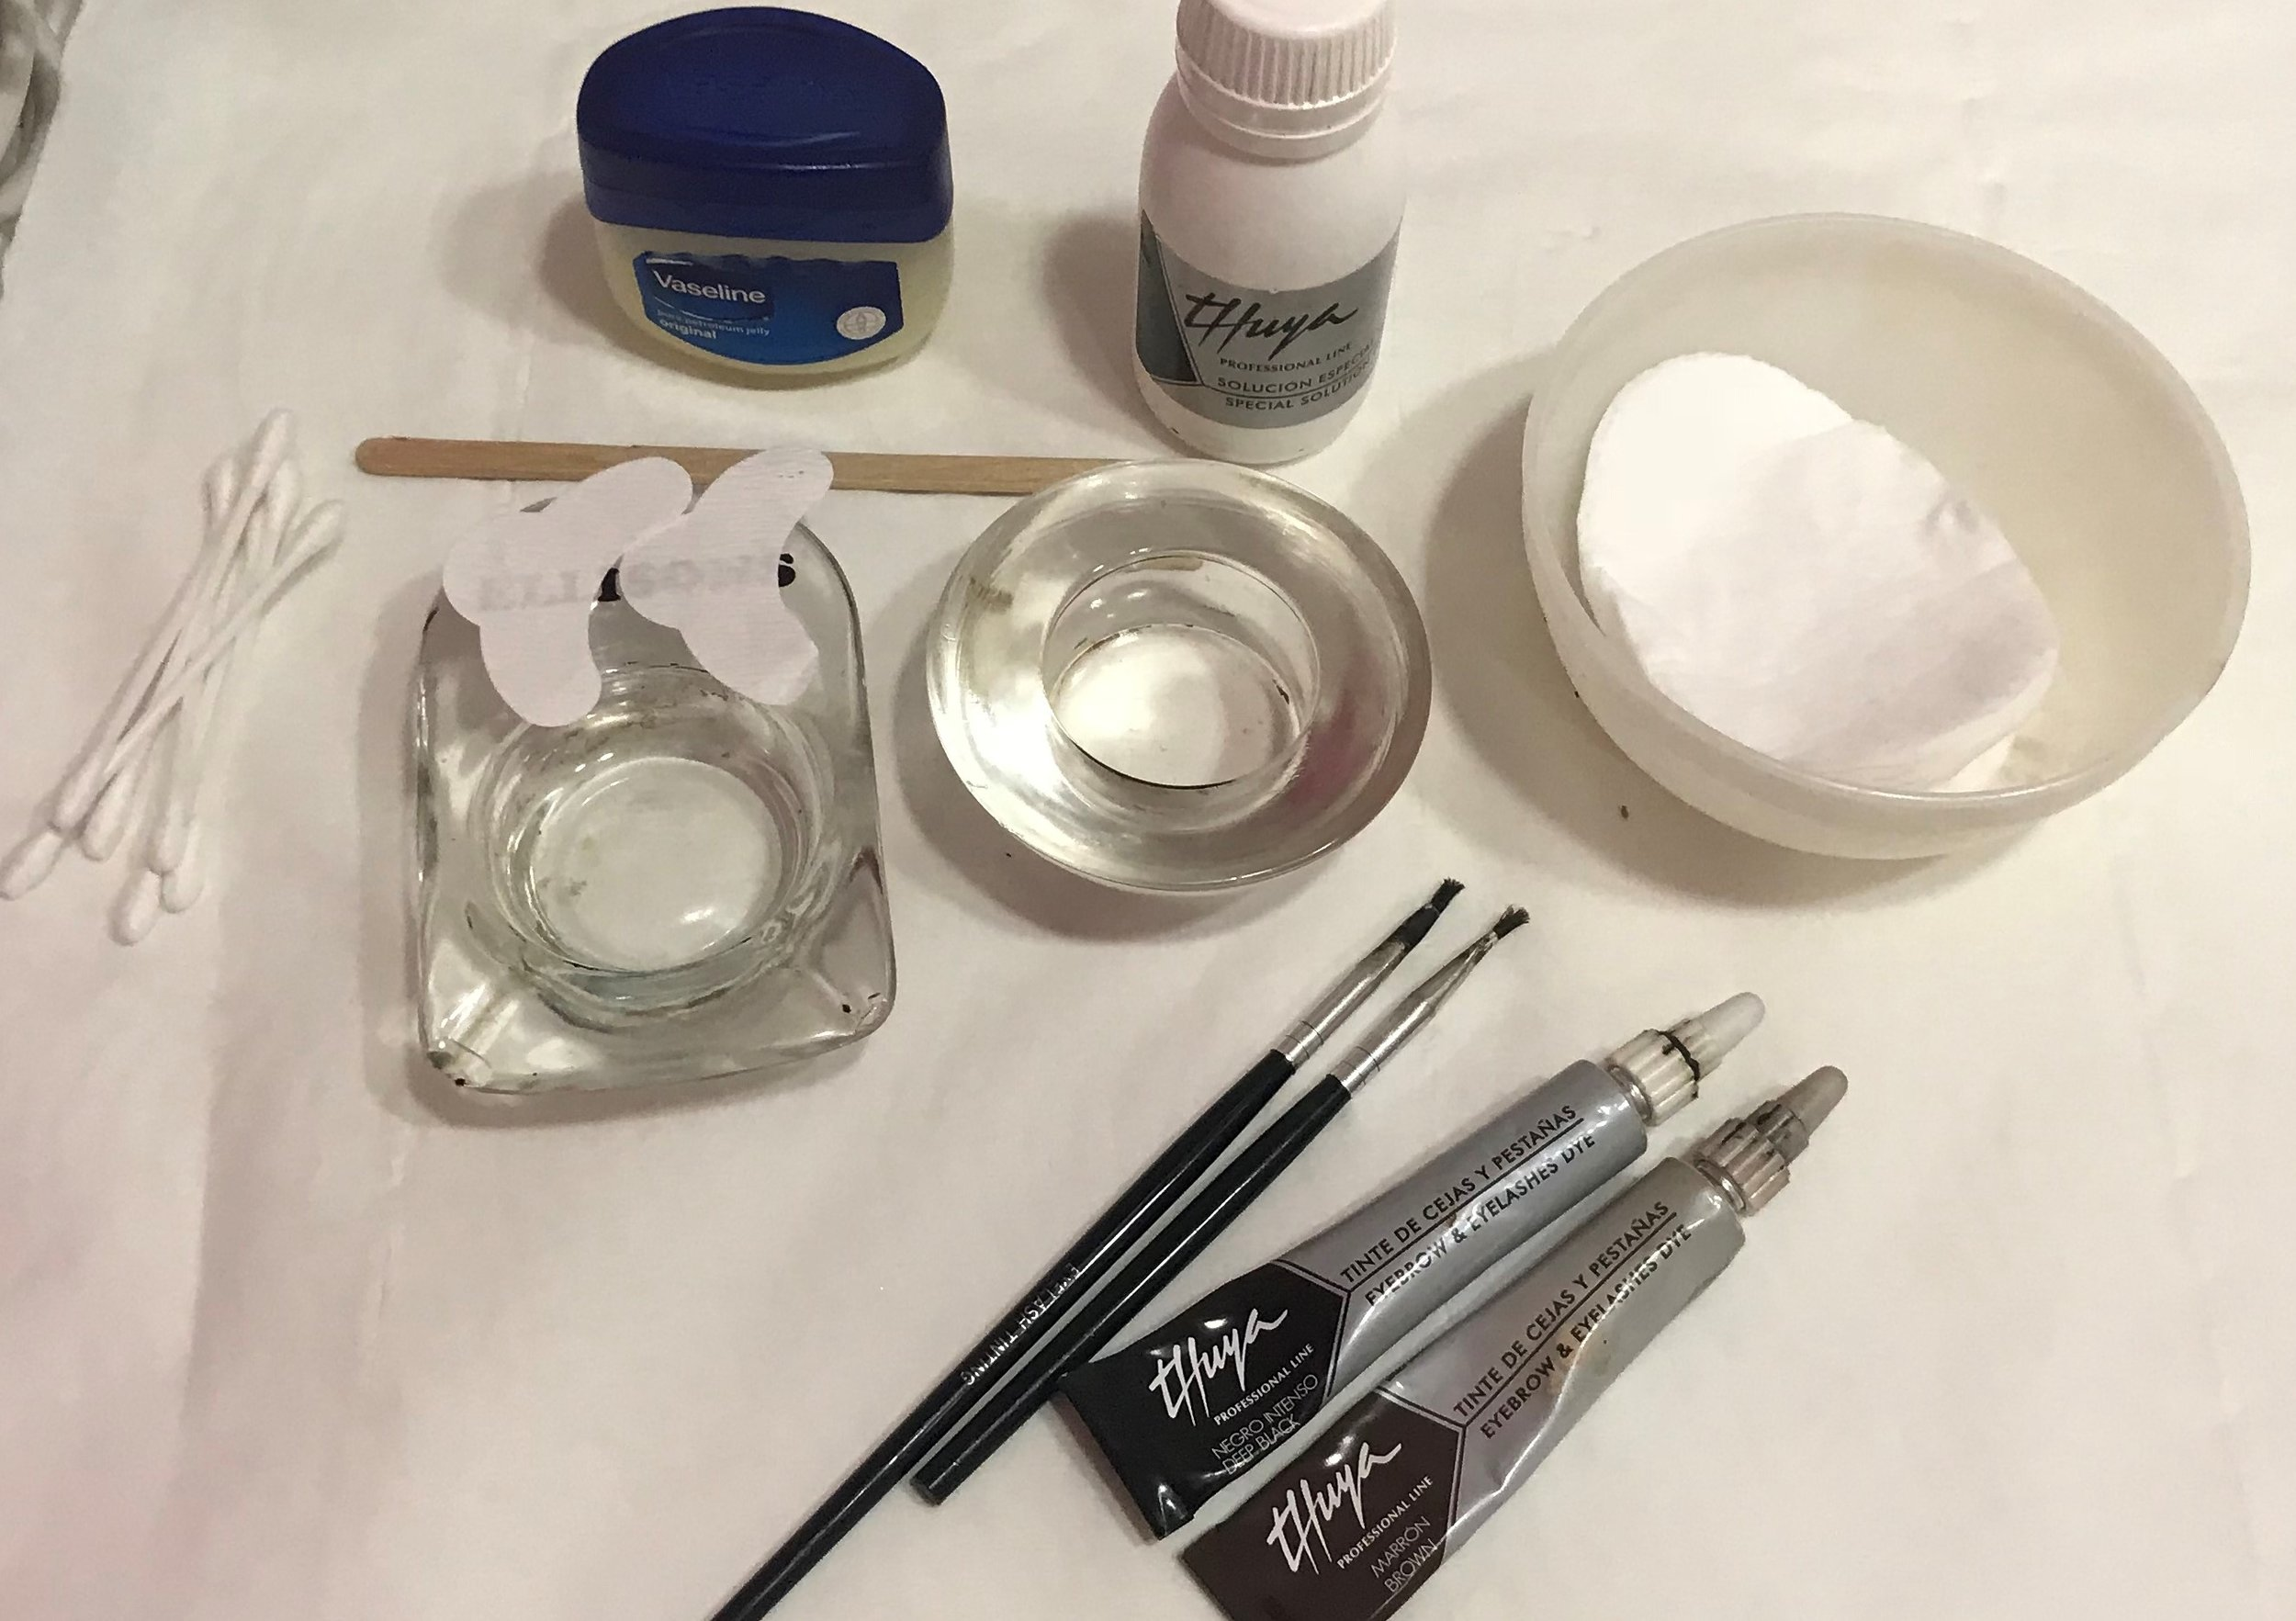 Lash and Brow tint ready